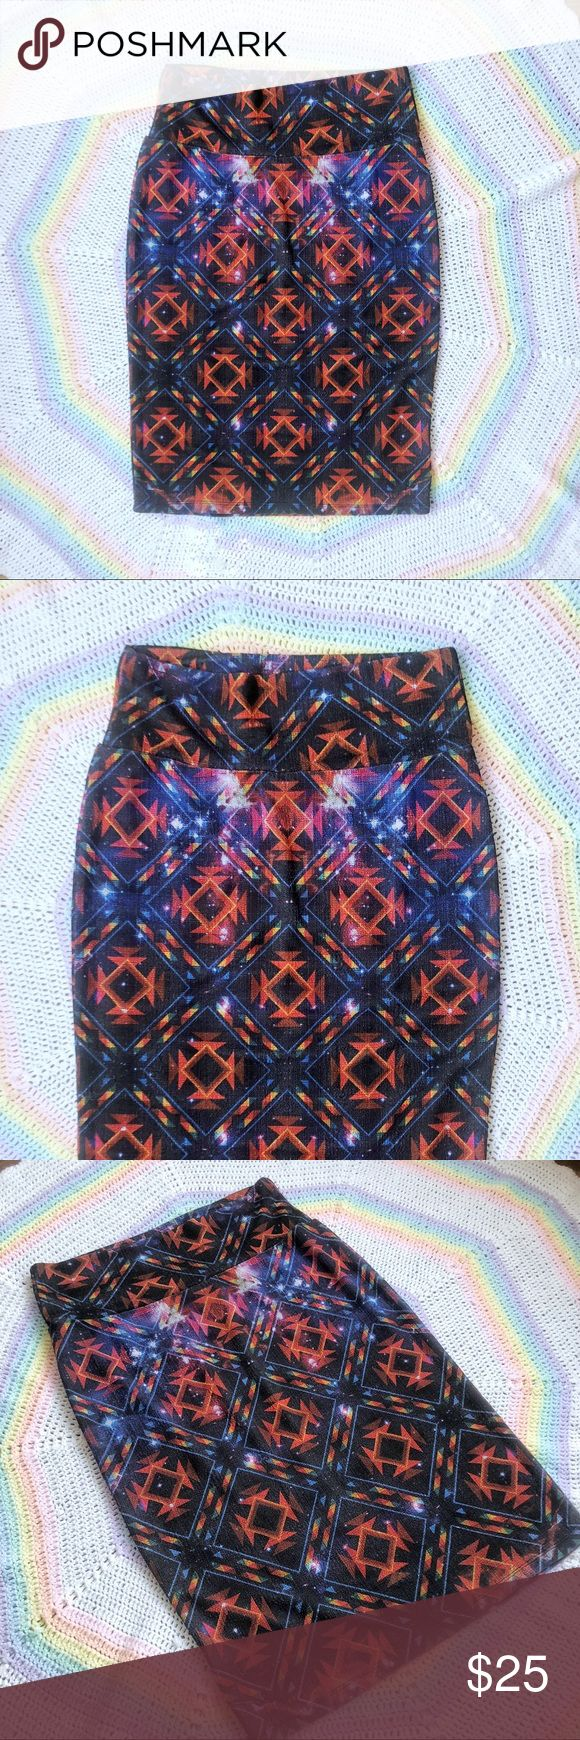 Like New🌈LuLaRoe Psychedelic Galaxy Rainbow Midi Super fun tube skirt by LuLaRoe! Bright, show-stopping, geometric galaxy fabric is a perfect fit to the simplicity of the bodycon design. Super stretchy, spandex blend material. Forgiving & hugs all the right places :) In like new condition! Worn once. Great piece! Offers welcome 🌟🌈🍄   Tags: vintage retro trippy rave raver y2k Lululemon mini skirt LuLaRoe Skirts Pencil